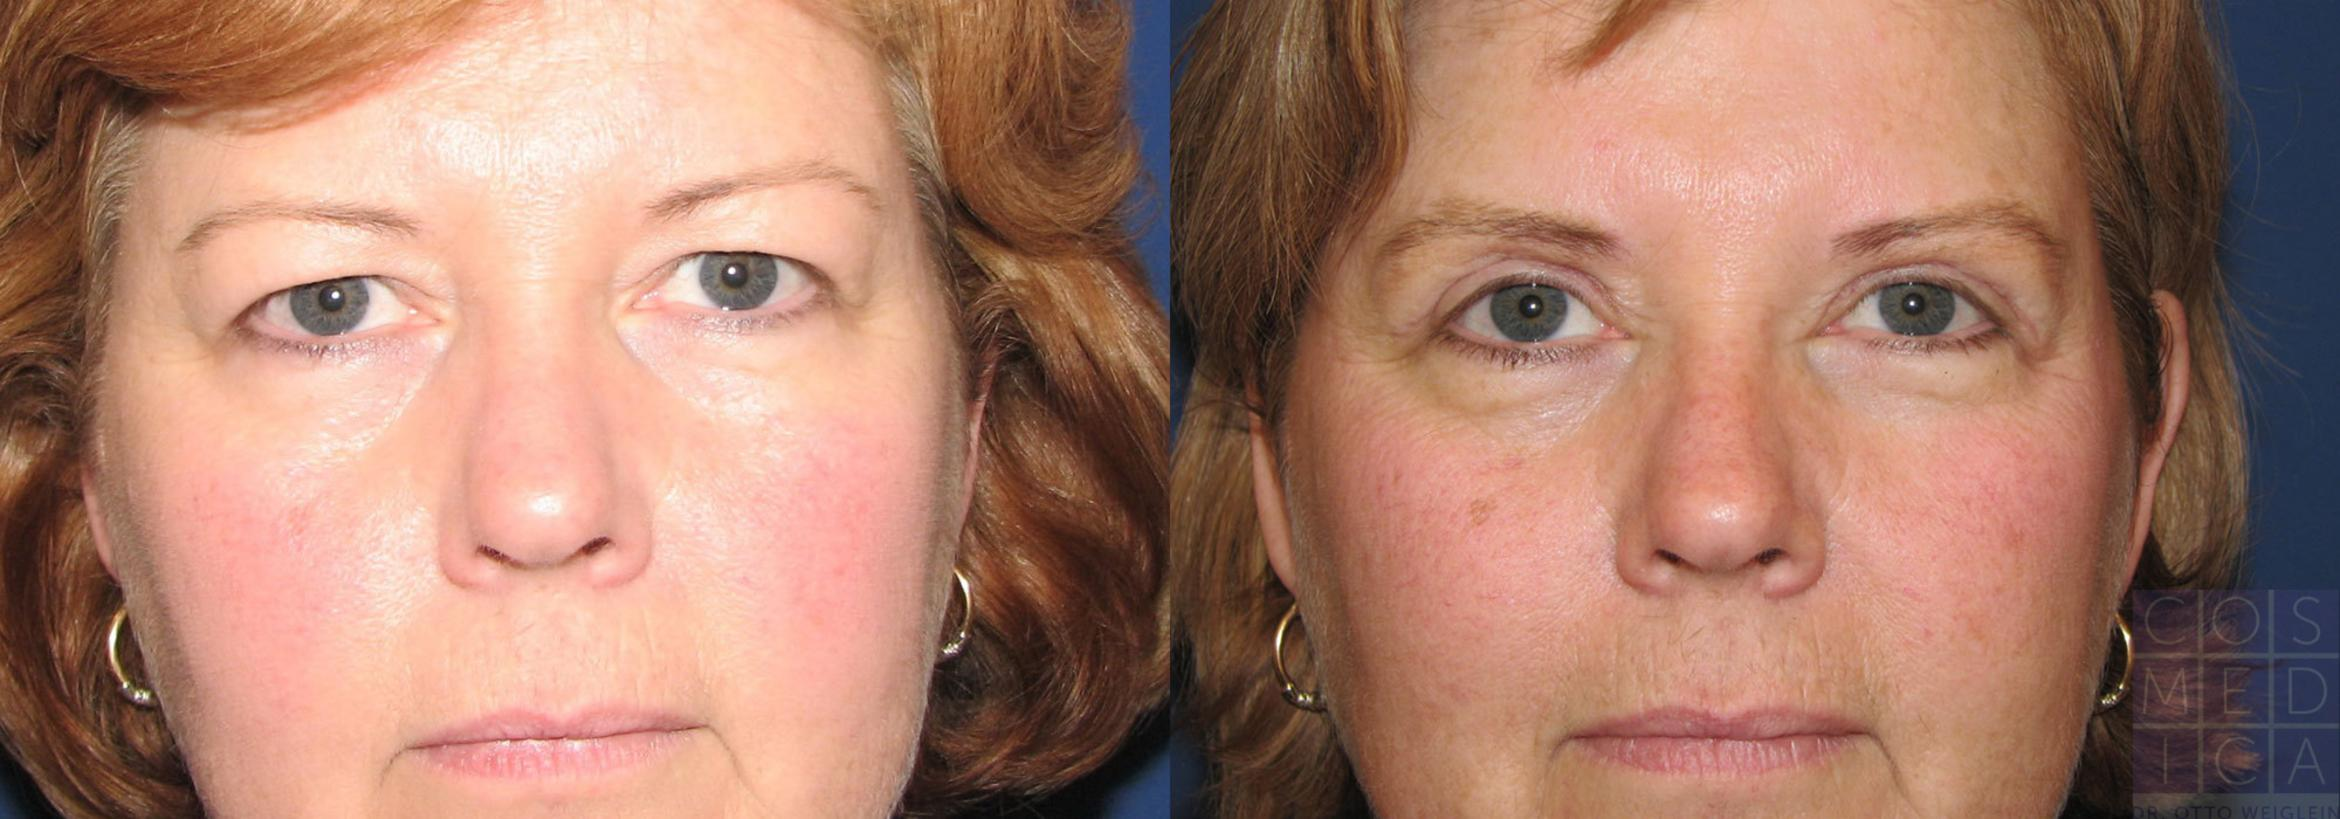 Eyelid Surgery Case 15 Before & After View #1 | Burlington & Oakville, Ontario | Cosmedica Professional Skin Care Centres